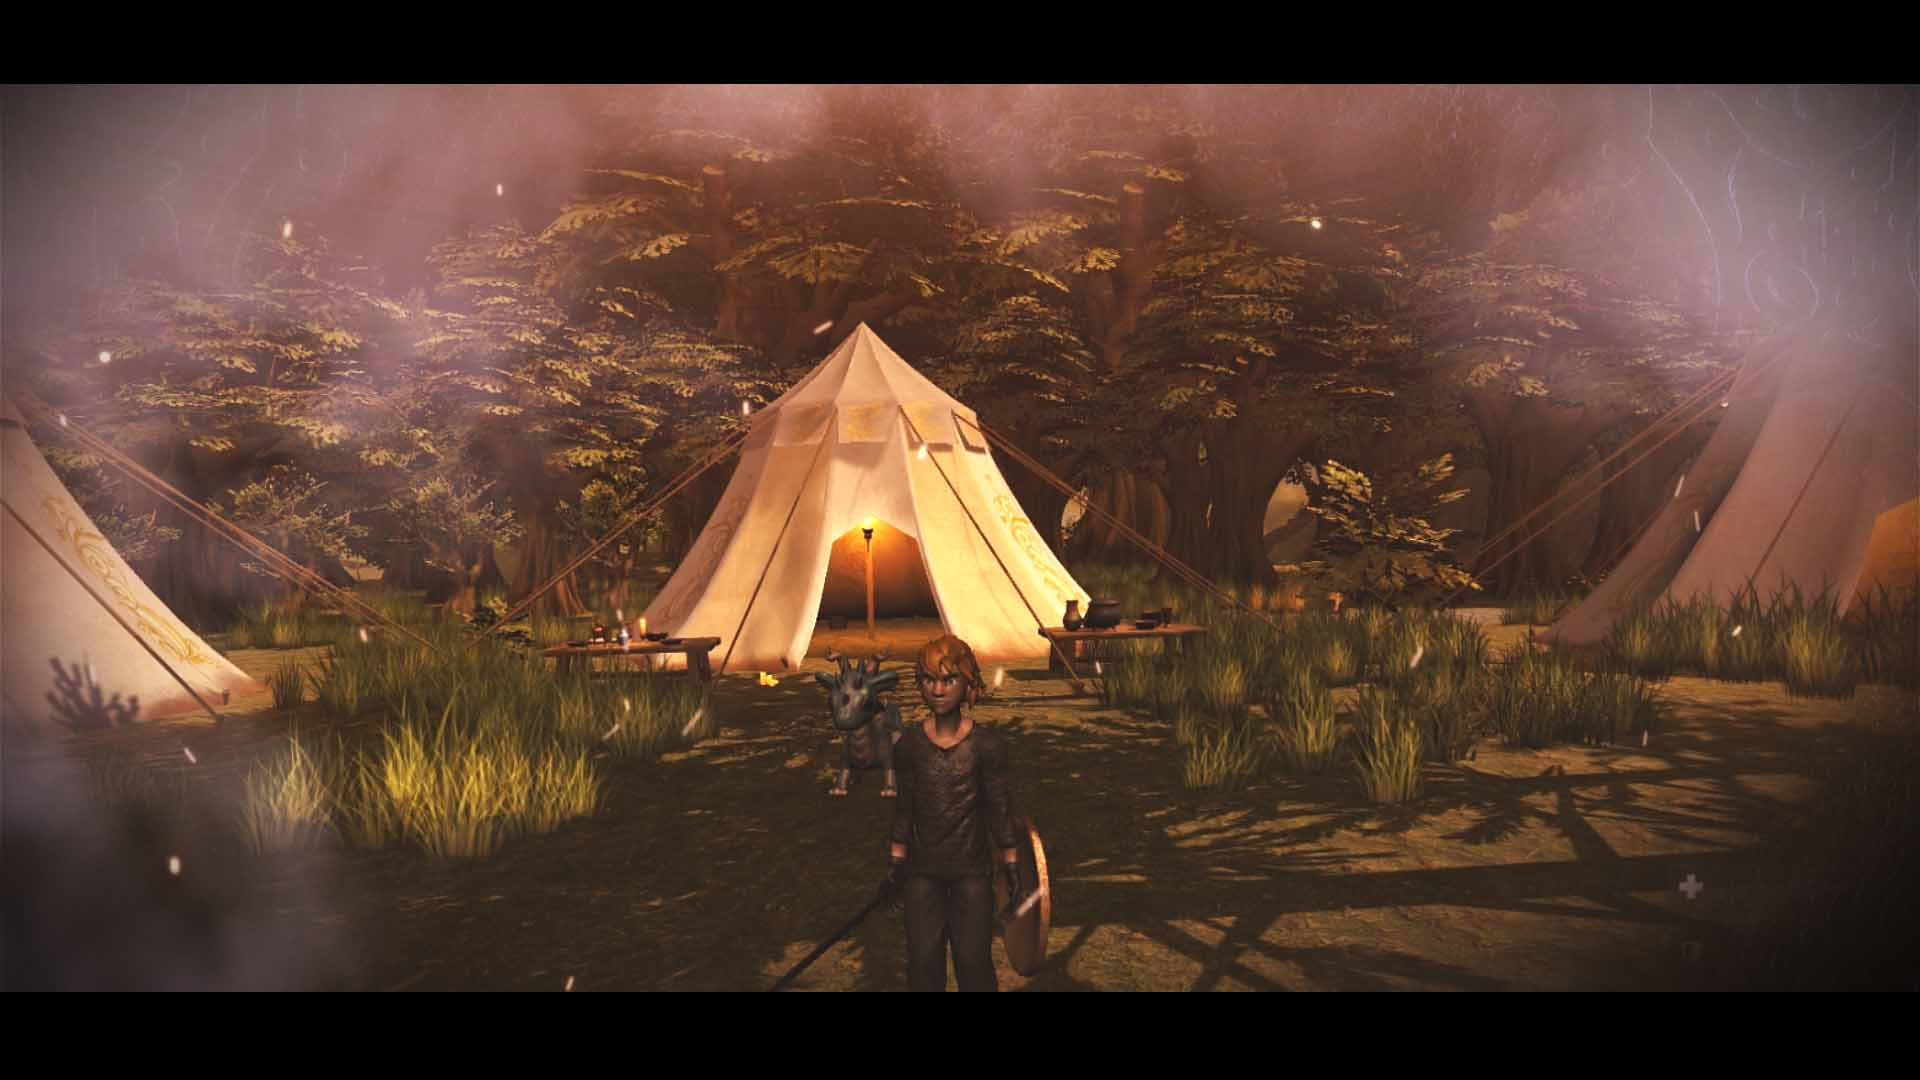 loe screen shot standing by tents.jpg